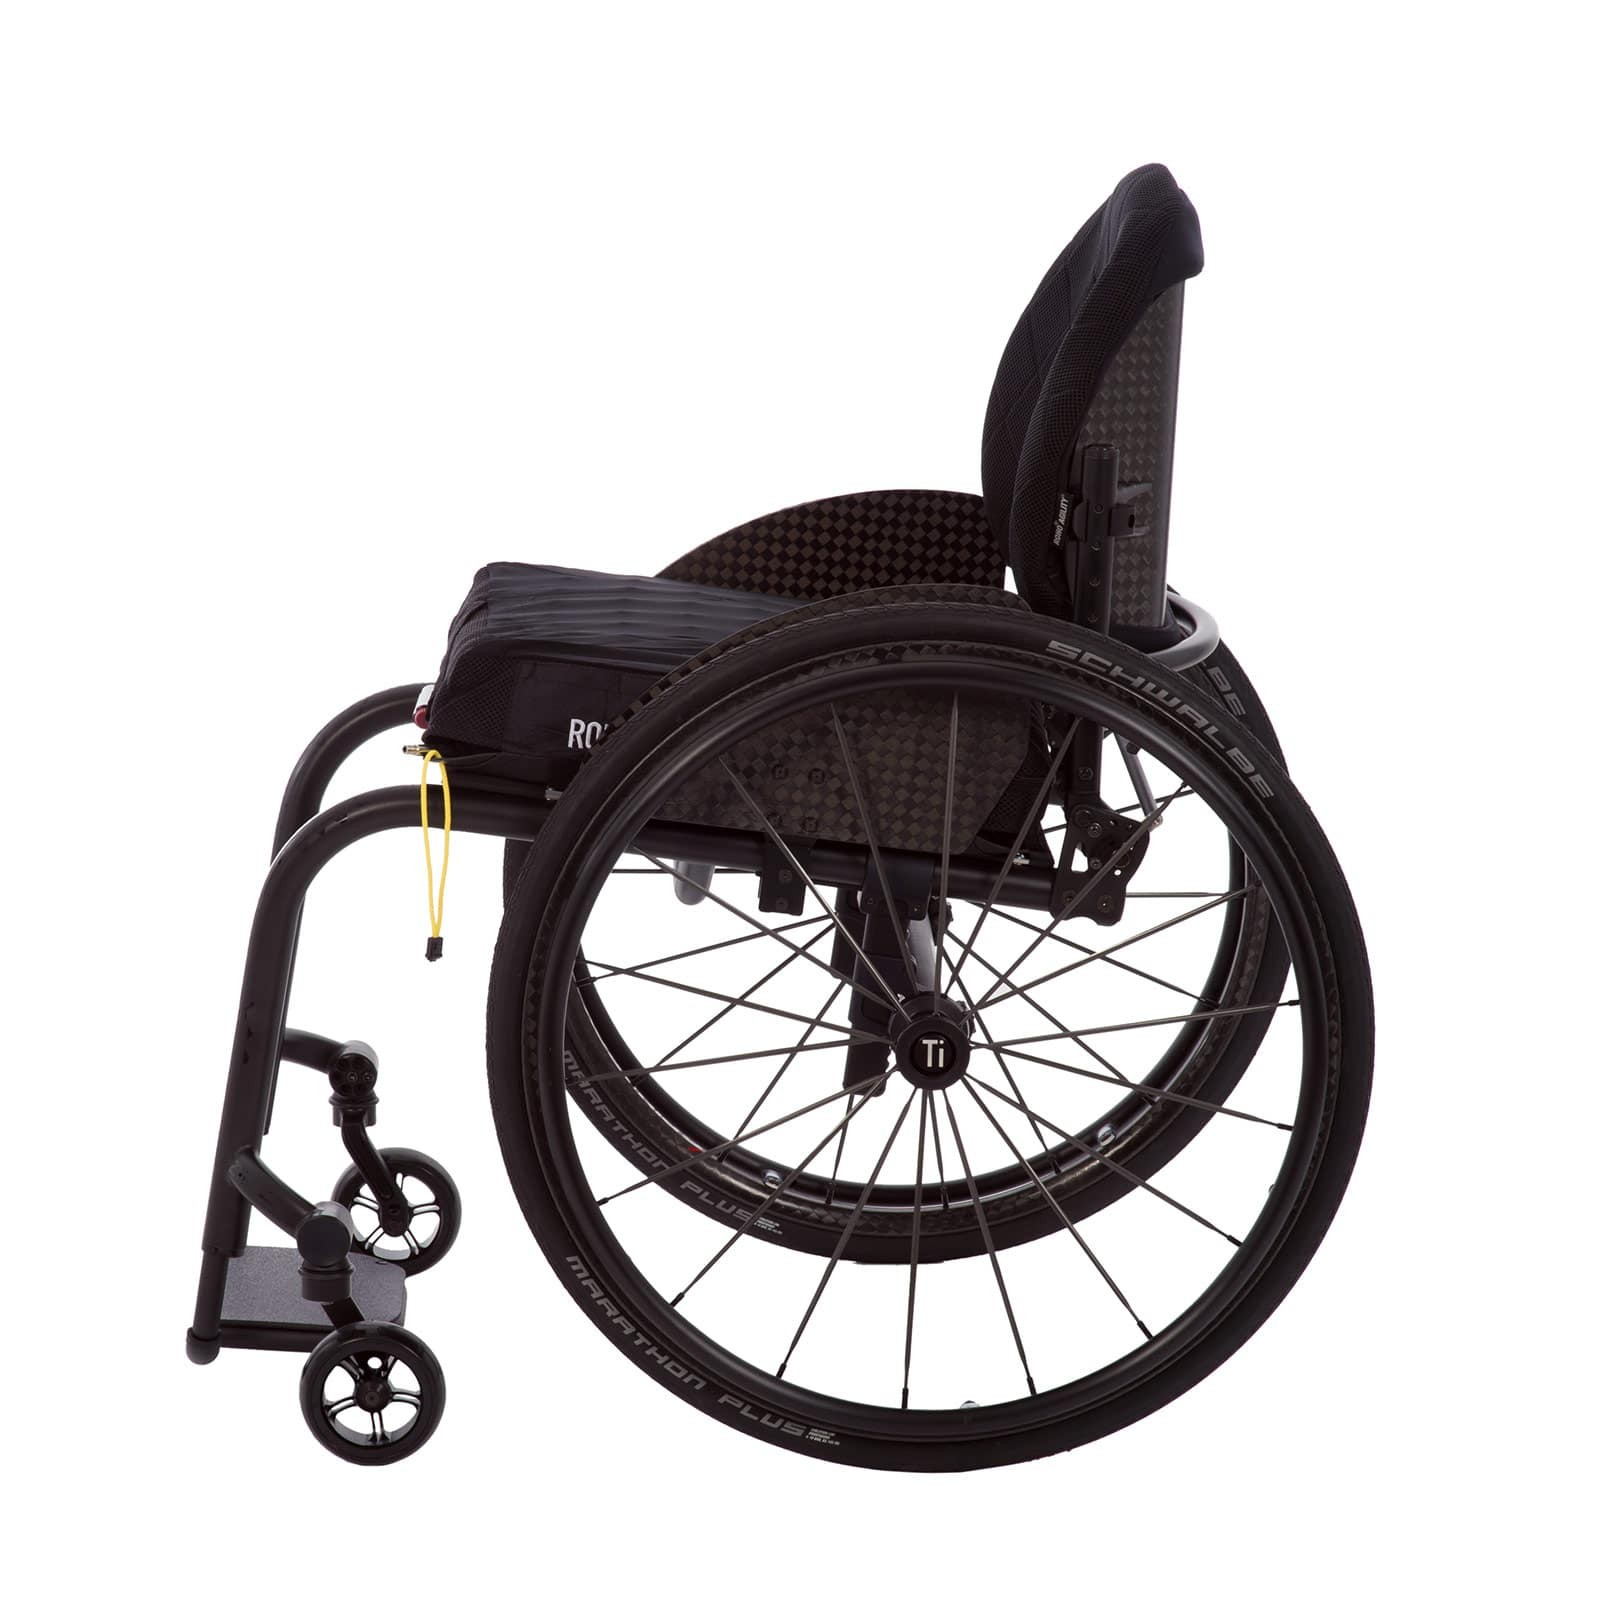 Tilite Zra Series 2 Rigid Titanium Wheelchair